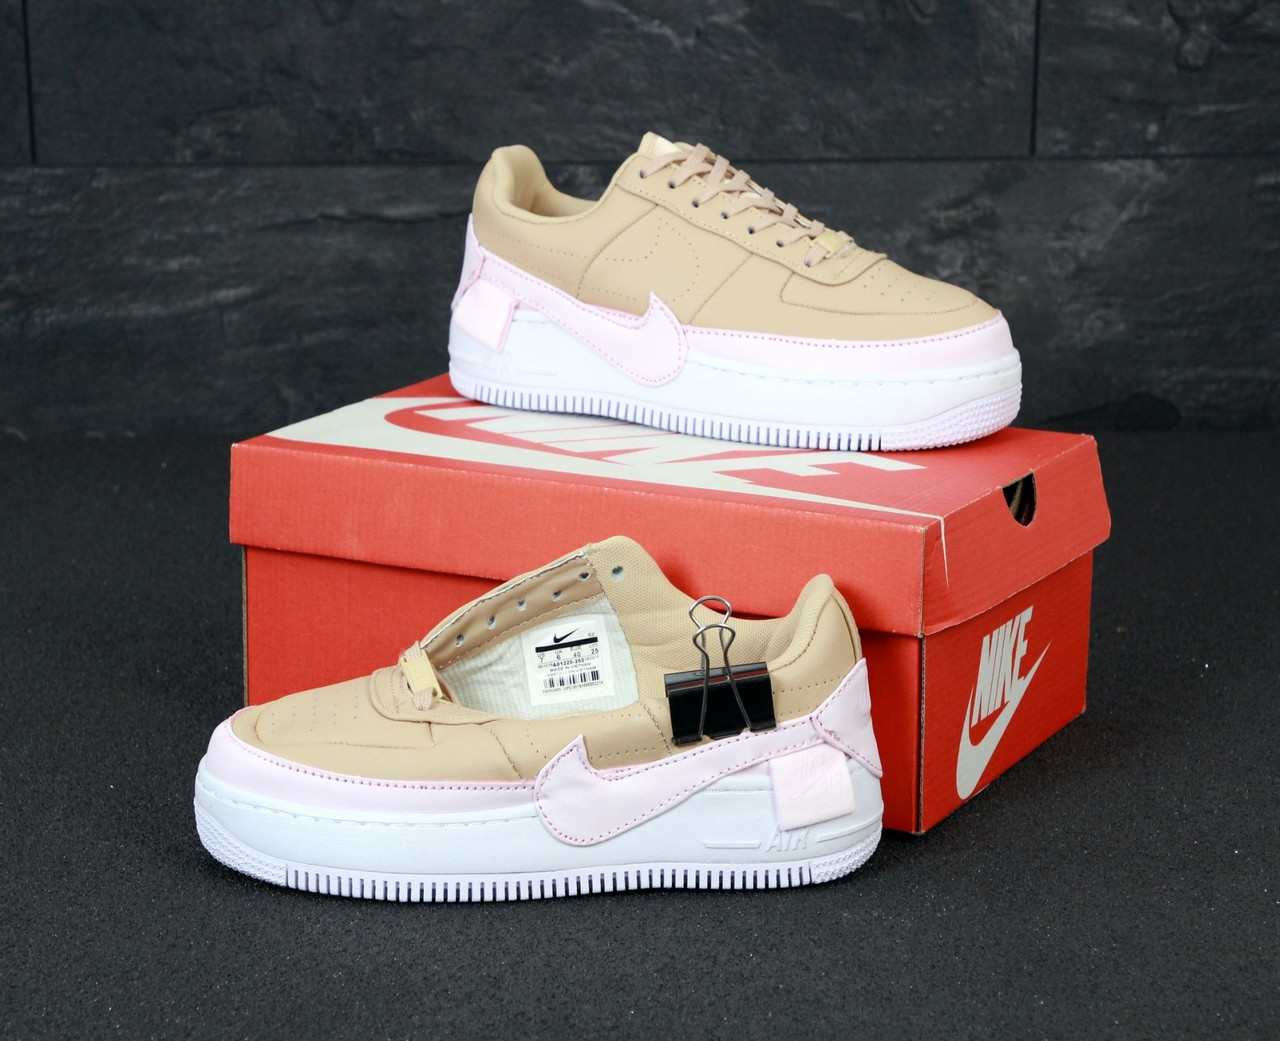 37 + nike air force 1 jester red and white